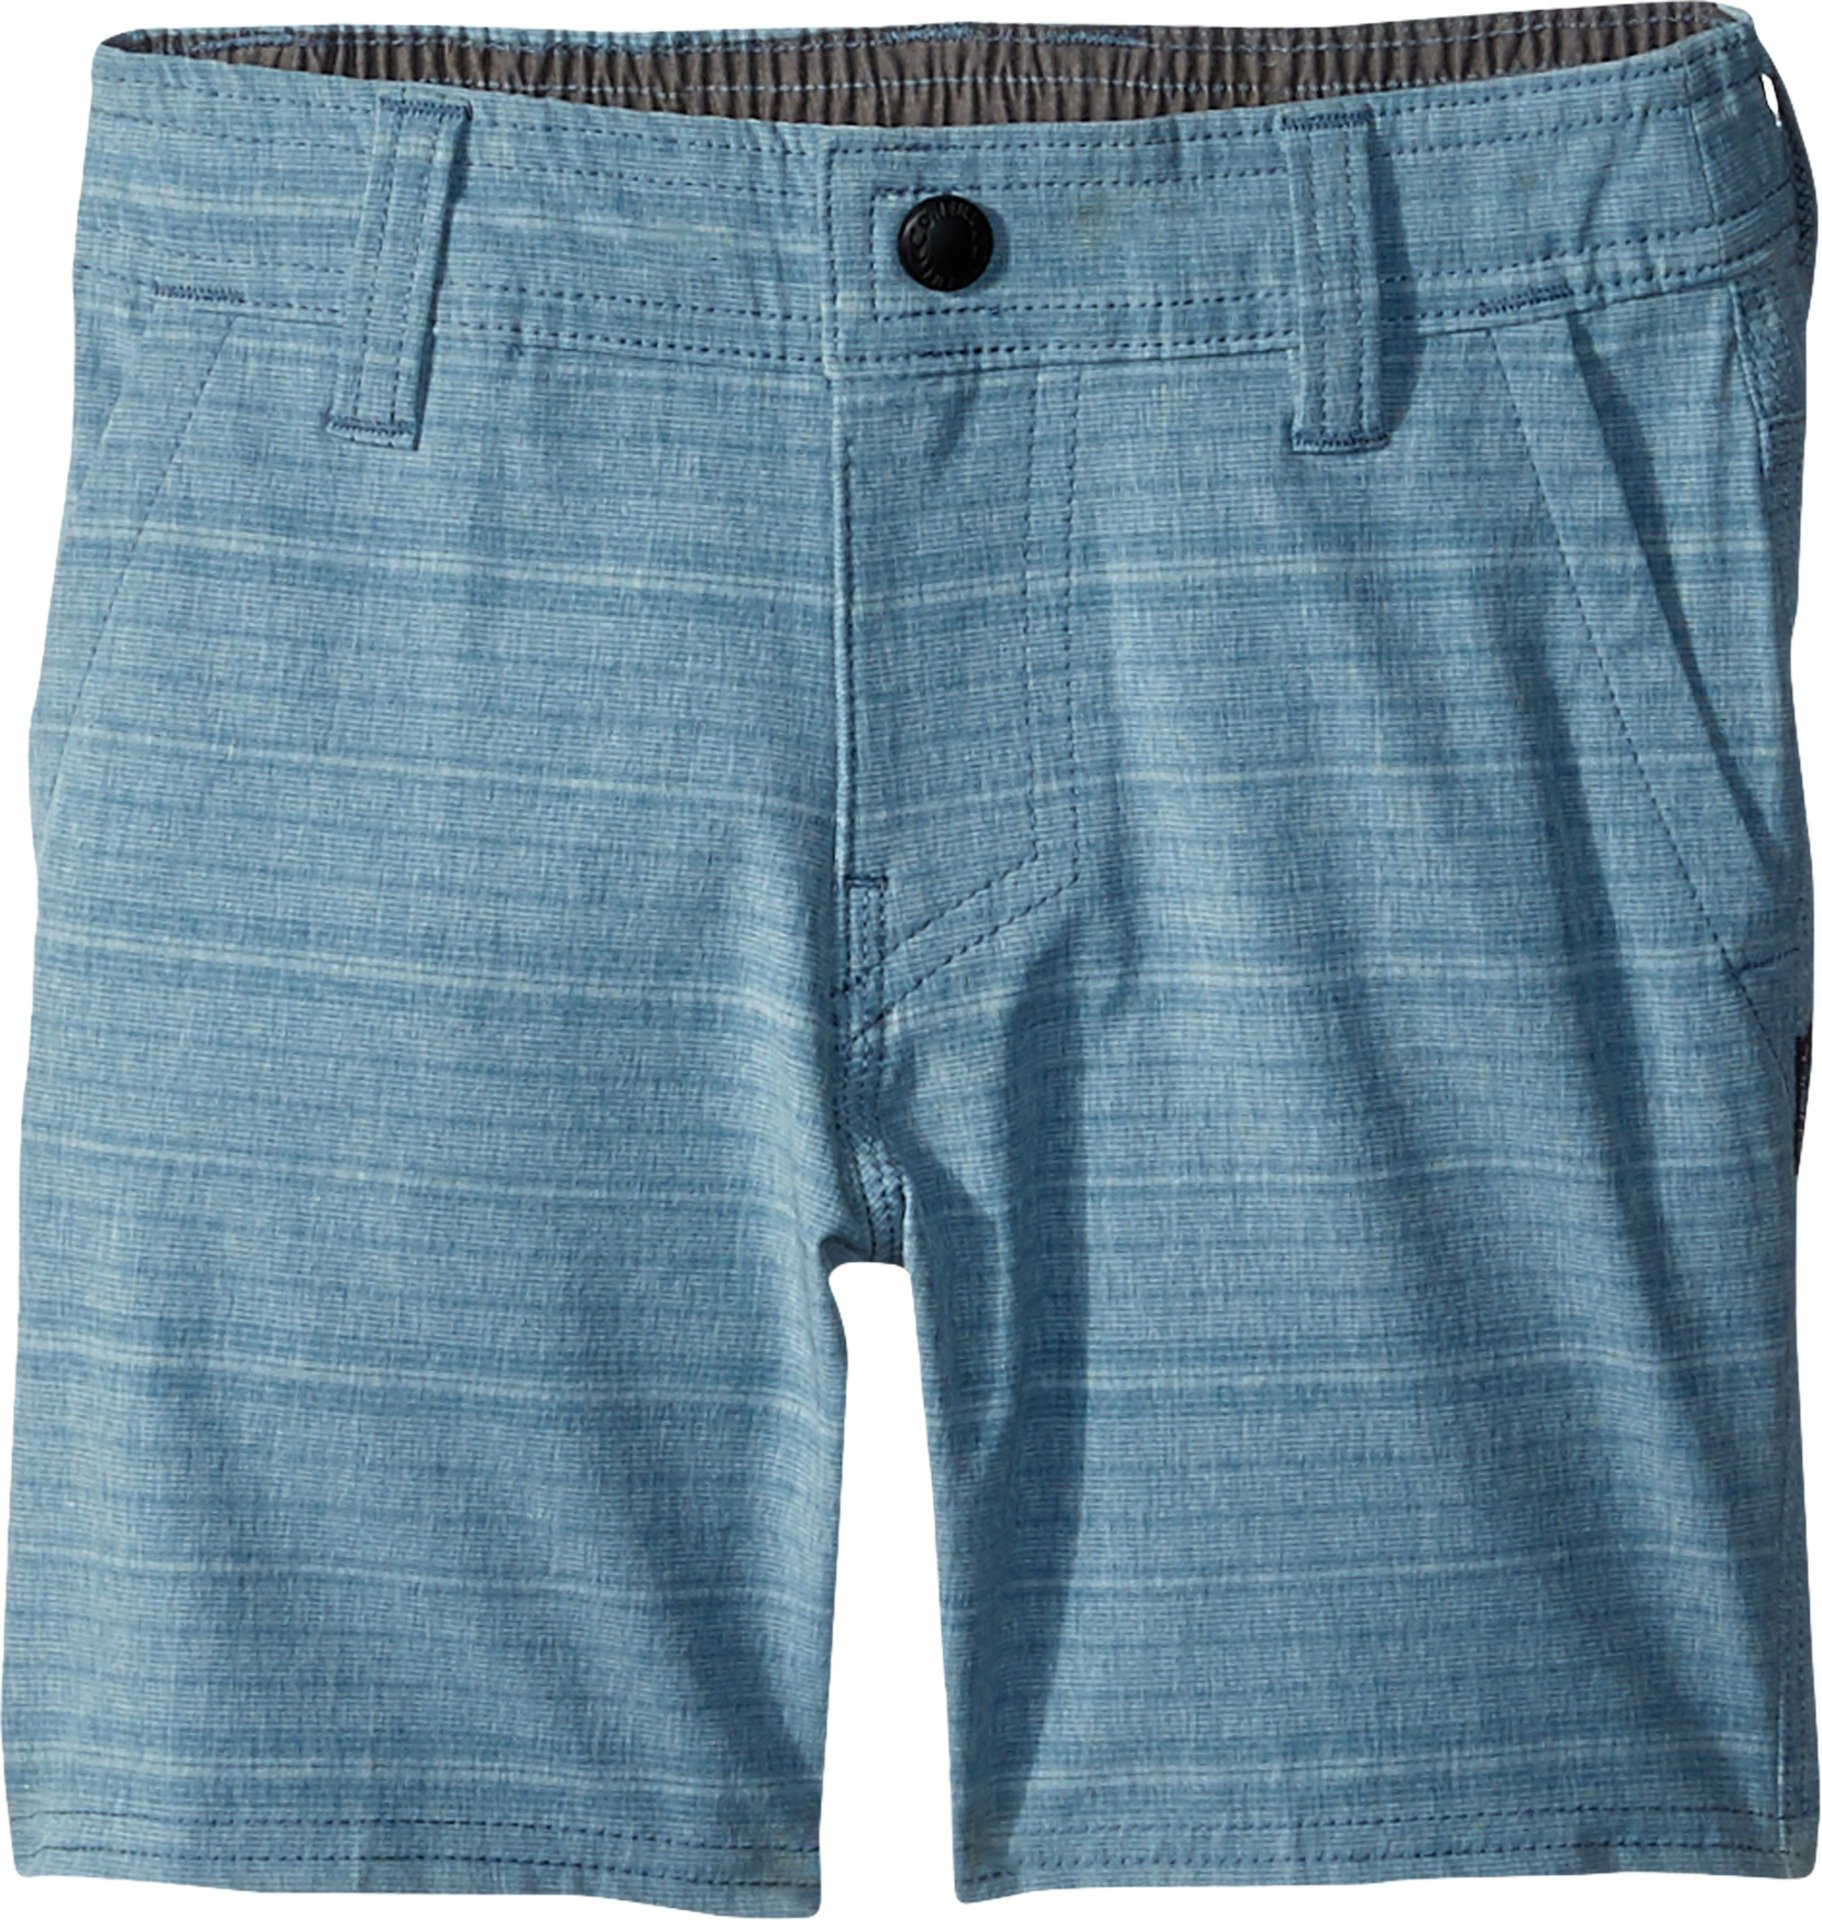 O'Neill Little Boys' Locked Quick Dry Hybrid Boardshort, Stripe Deep Teal, 2T by O'Neill (Image #1)